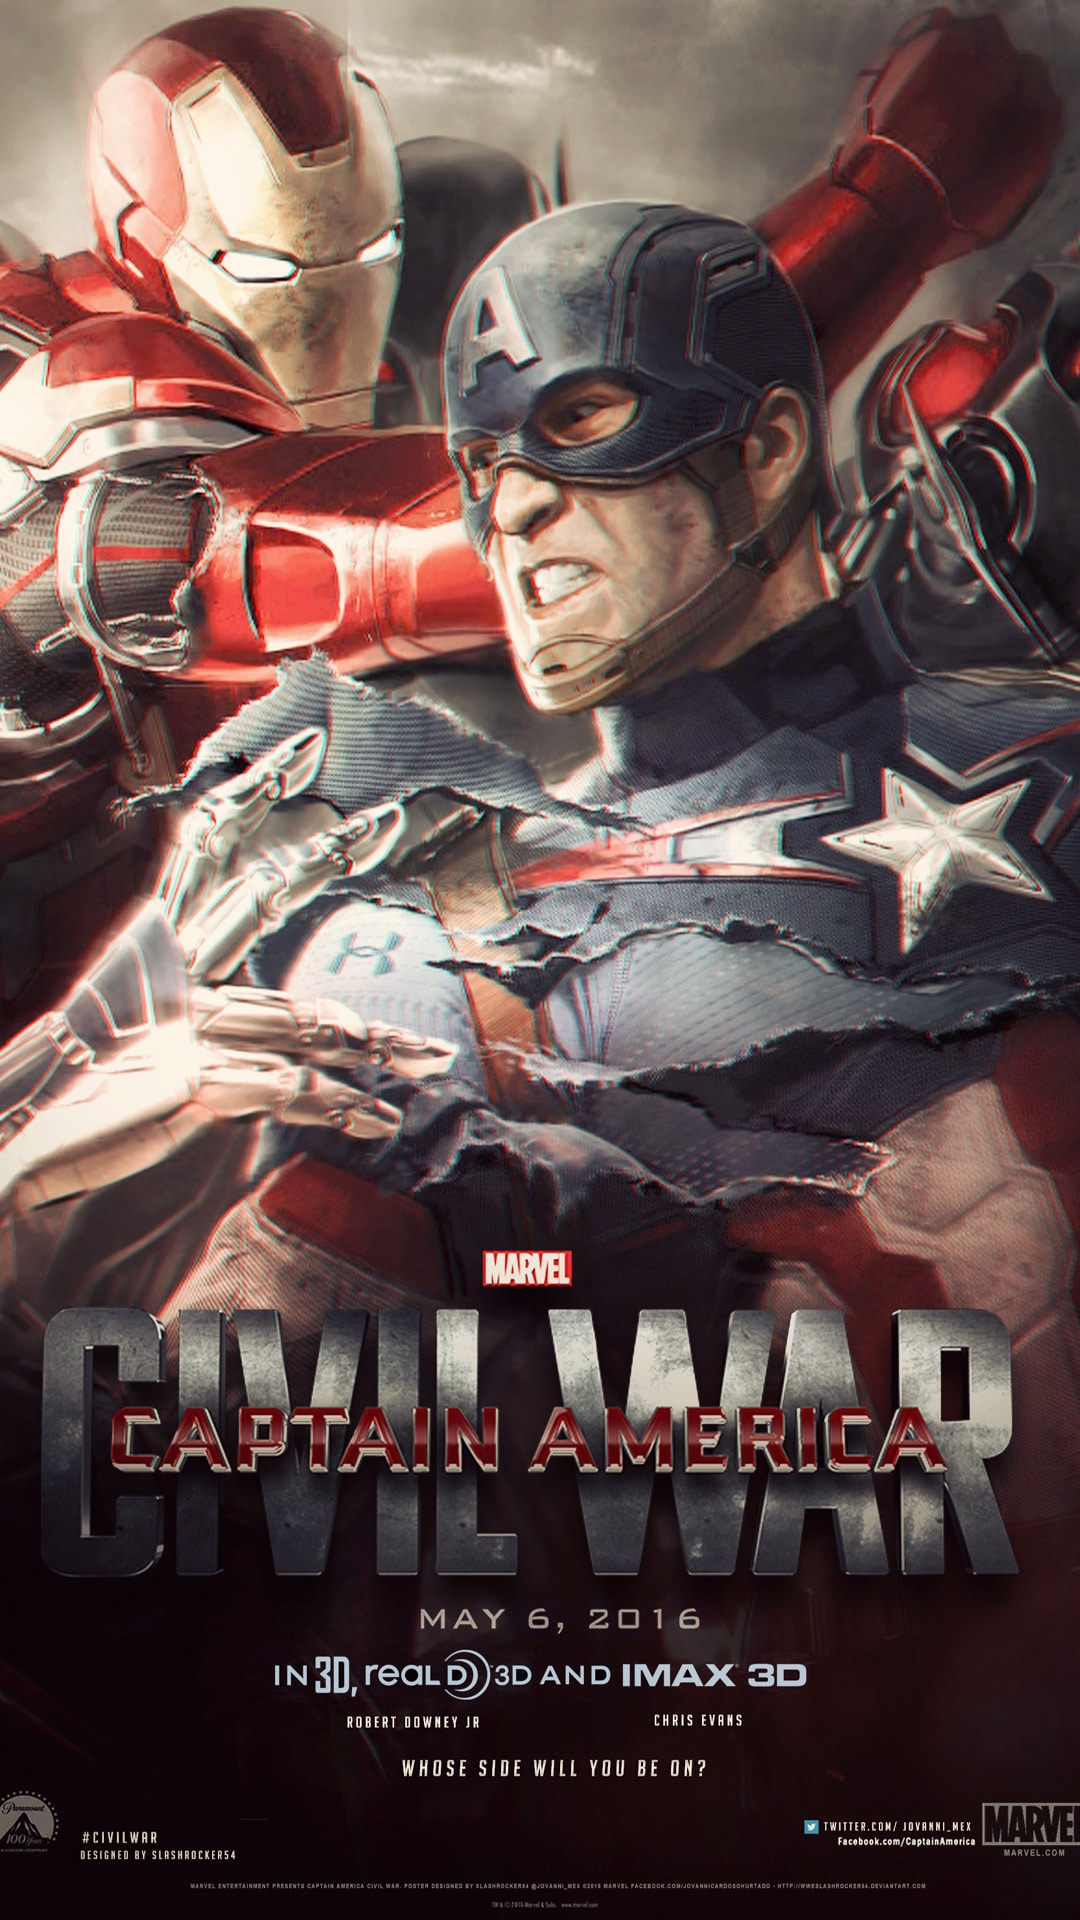 Iphone 6s 3d Touch Wallpaper Captain America Civil War Hd Wallpapers For Iphone Apple